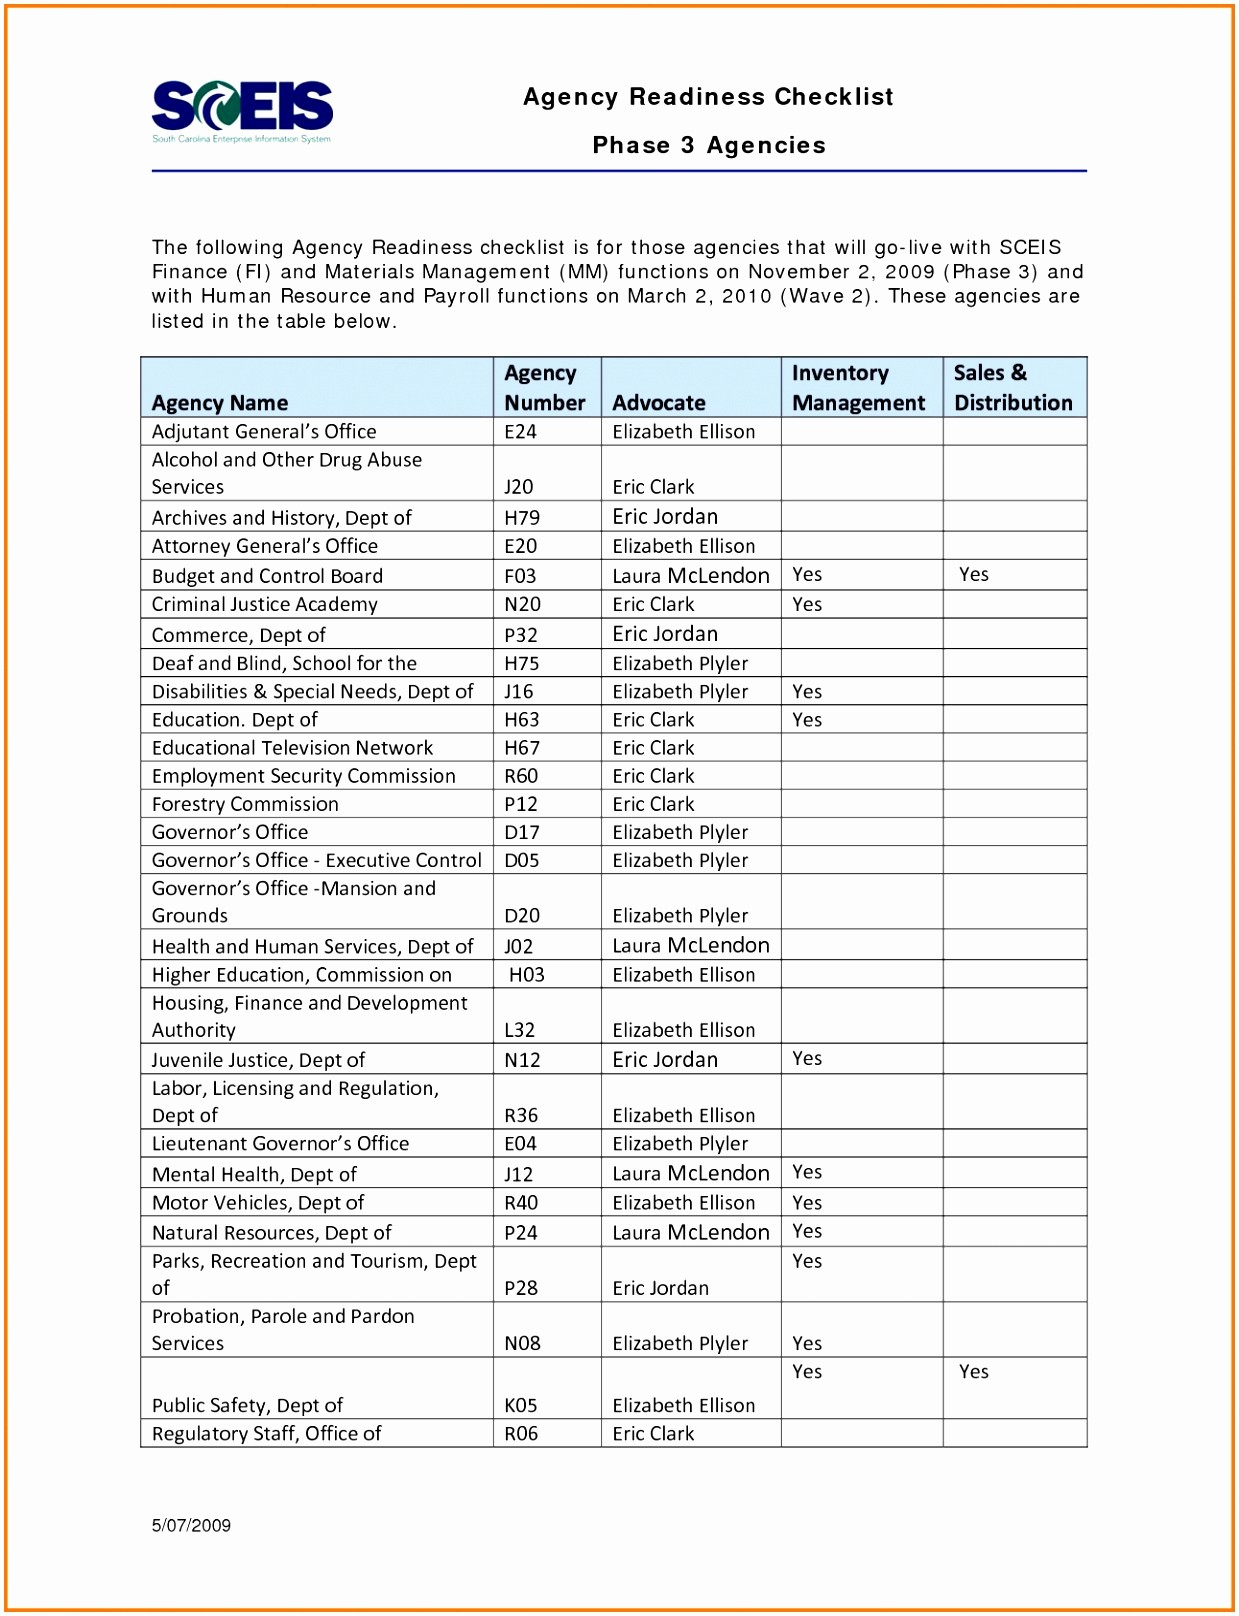 Office Move Checklist Template Excel New 9 Fice Move Checklist Template Excel Rrrqa